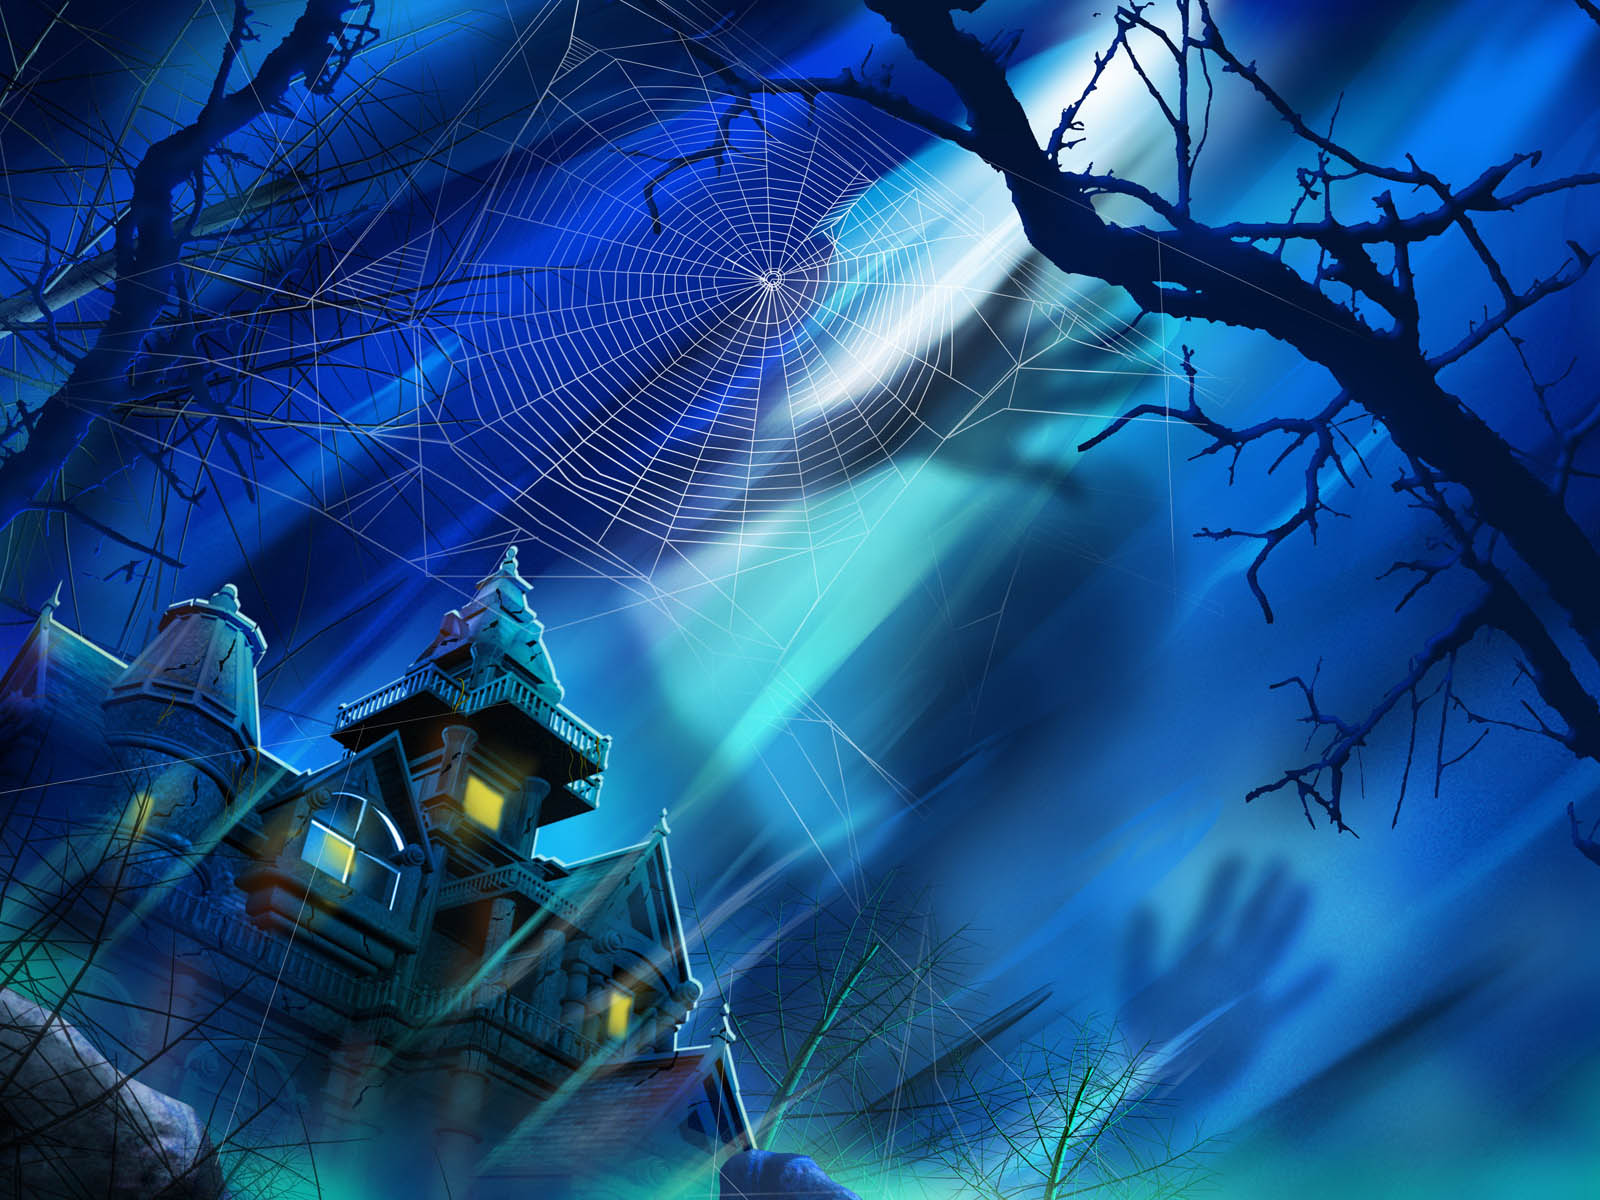 Wallpapers halloween wallpapers for Popular wallpapers for home